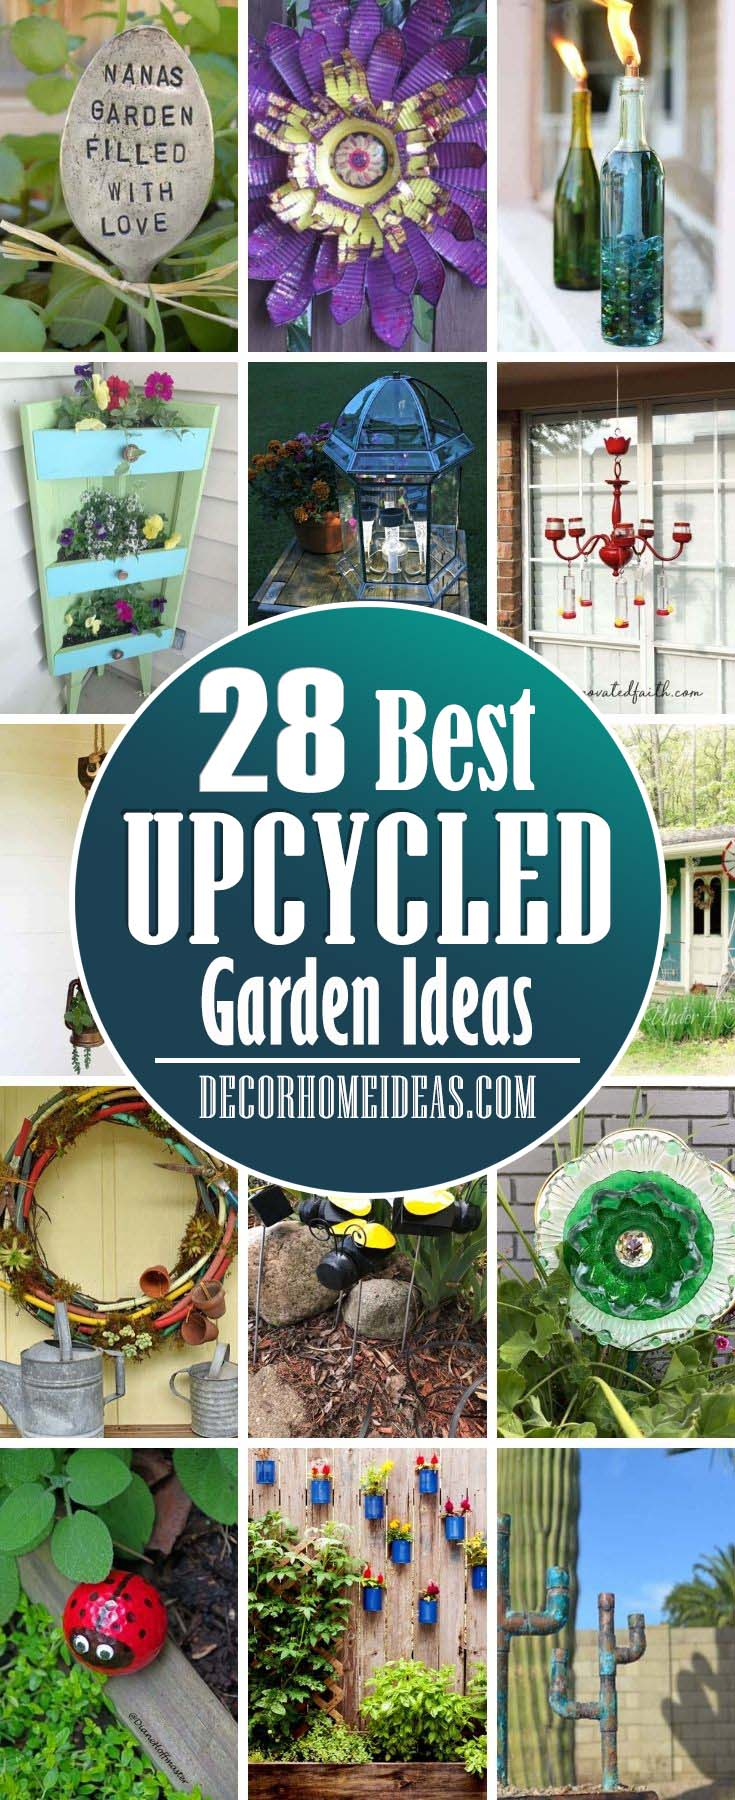 Best Upcycled Garden Ideas. Start your gardening goals with these DIY Upcycled Garden Projects and repurpose old and unused objects into something useful in the garden! #decorhomeideas